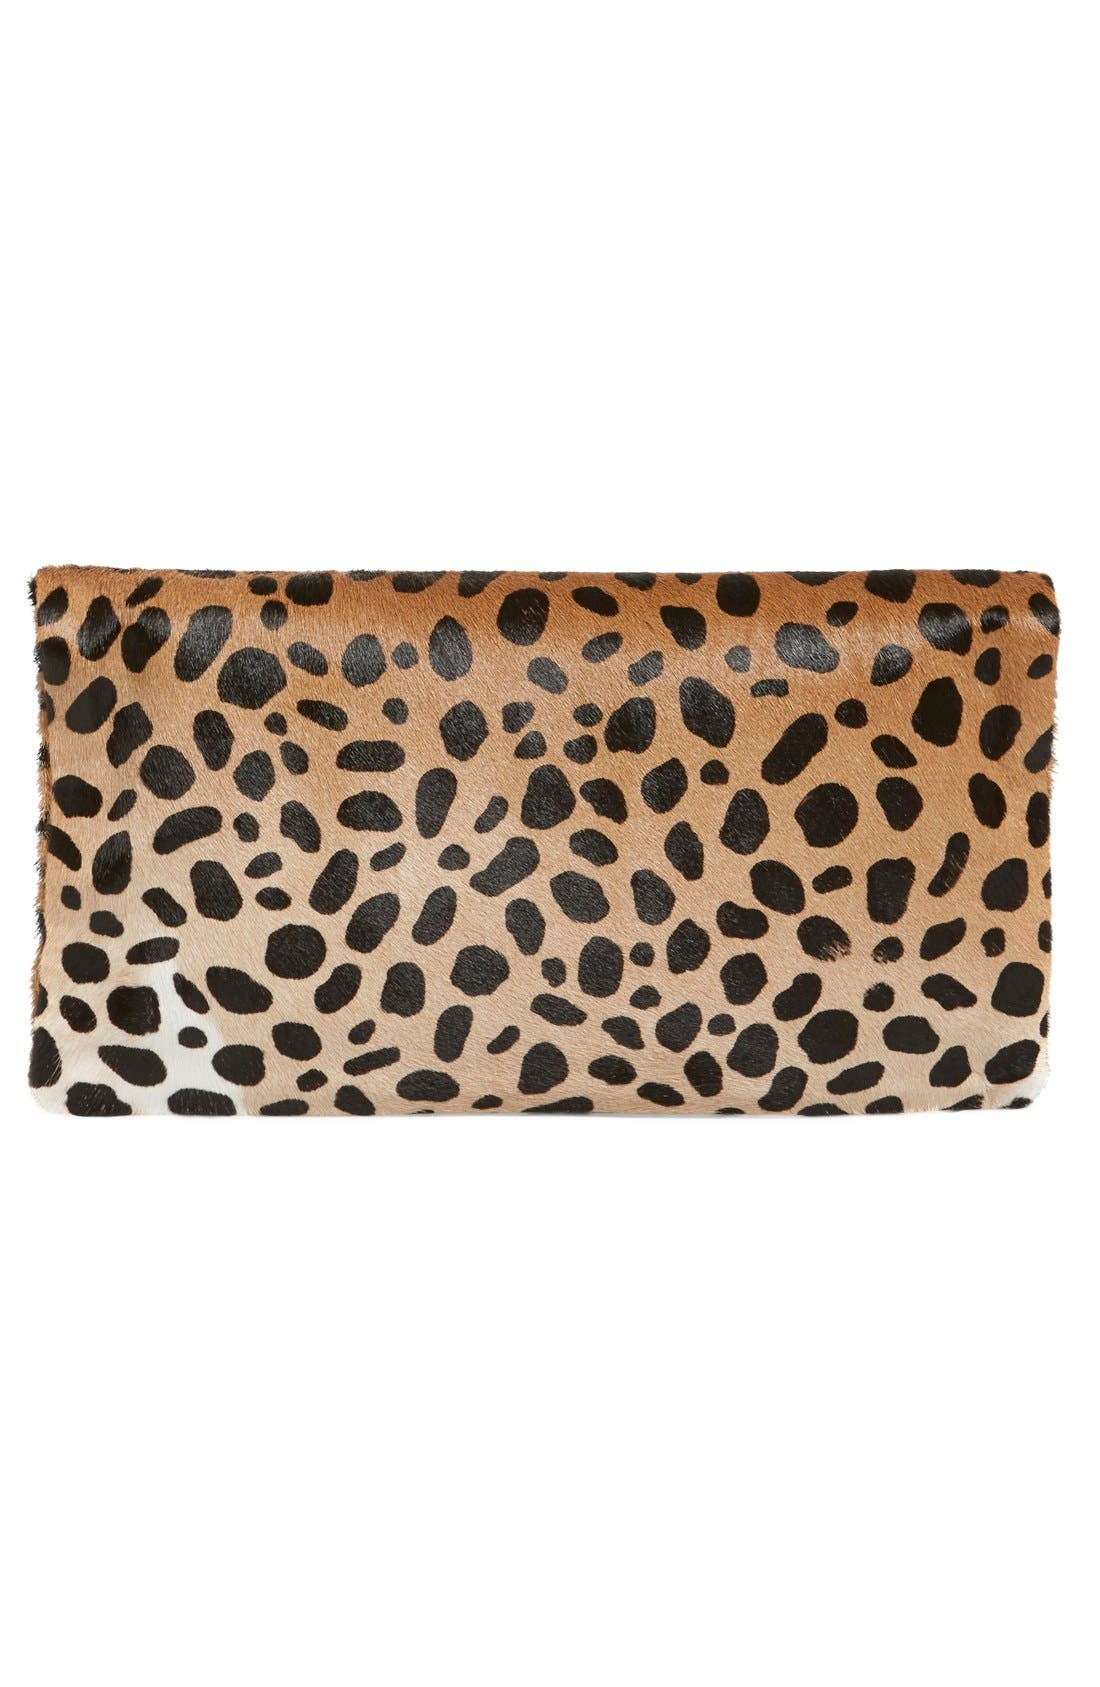 Alternate Image 3  - Clare V. Genuine Calf Hair Leopard Print Foldover Clutch